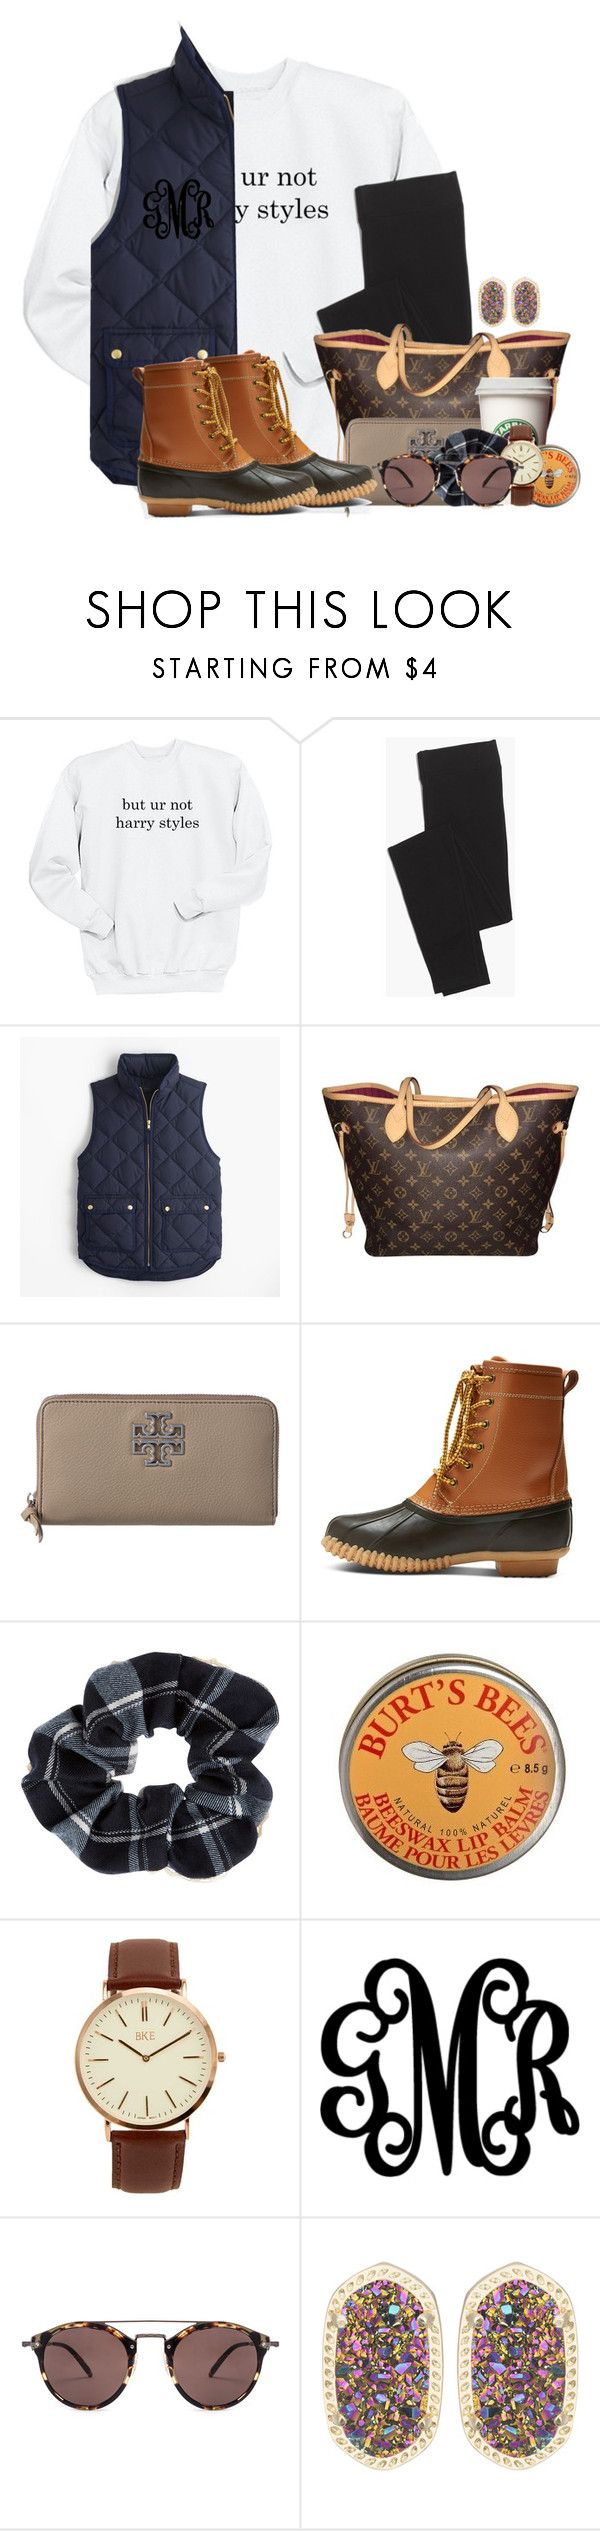 """Don't even have to talk to him and he makes my heart flutter"" by flroasburn ❤ liked on Polyvore featuring Madewell, J.Crew, Louis Vuitton, Tory Burch, Merona, Accessorize, Burt's Bees, BKE, WALL and Oliver Peoples"